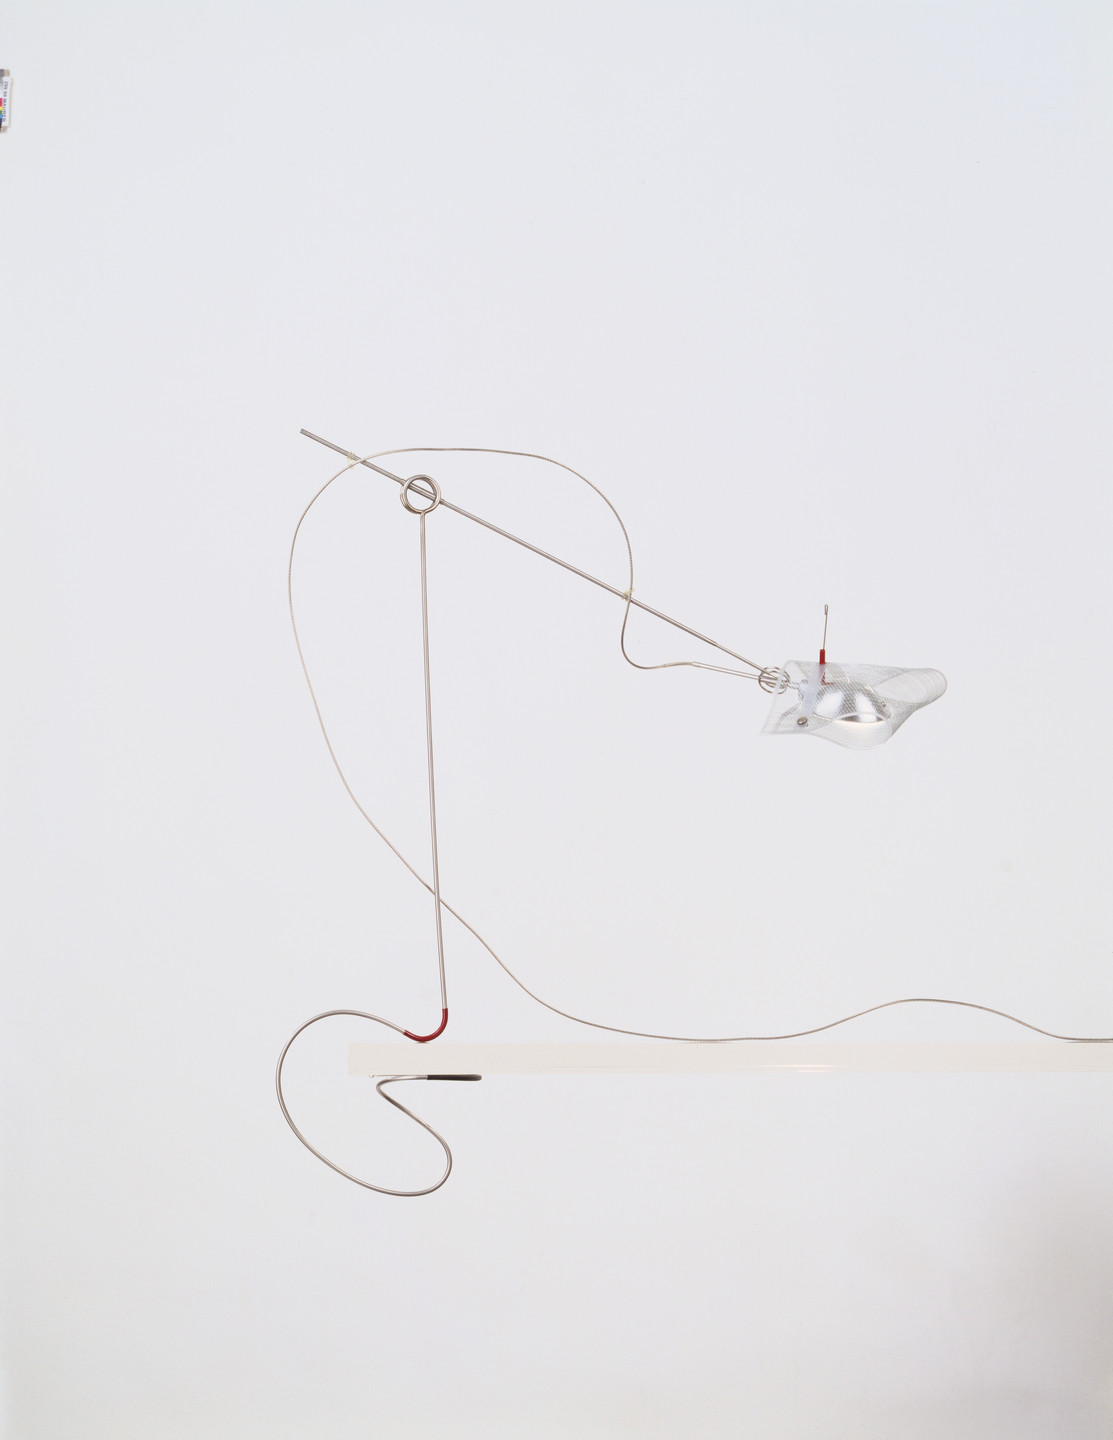 Ingo Maurer. Los Minimalos Dos Table Lamp. 1994